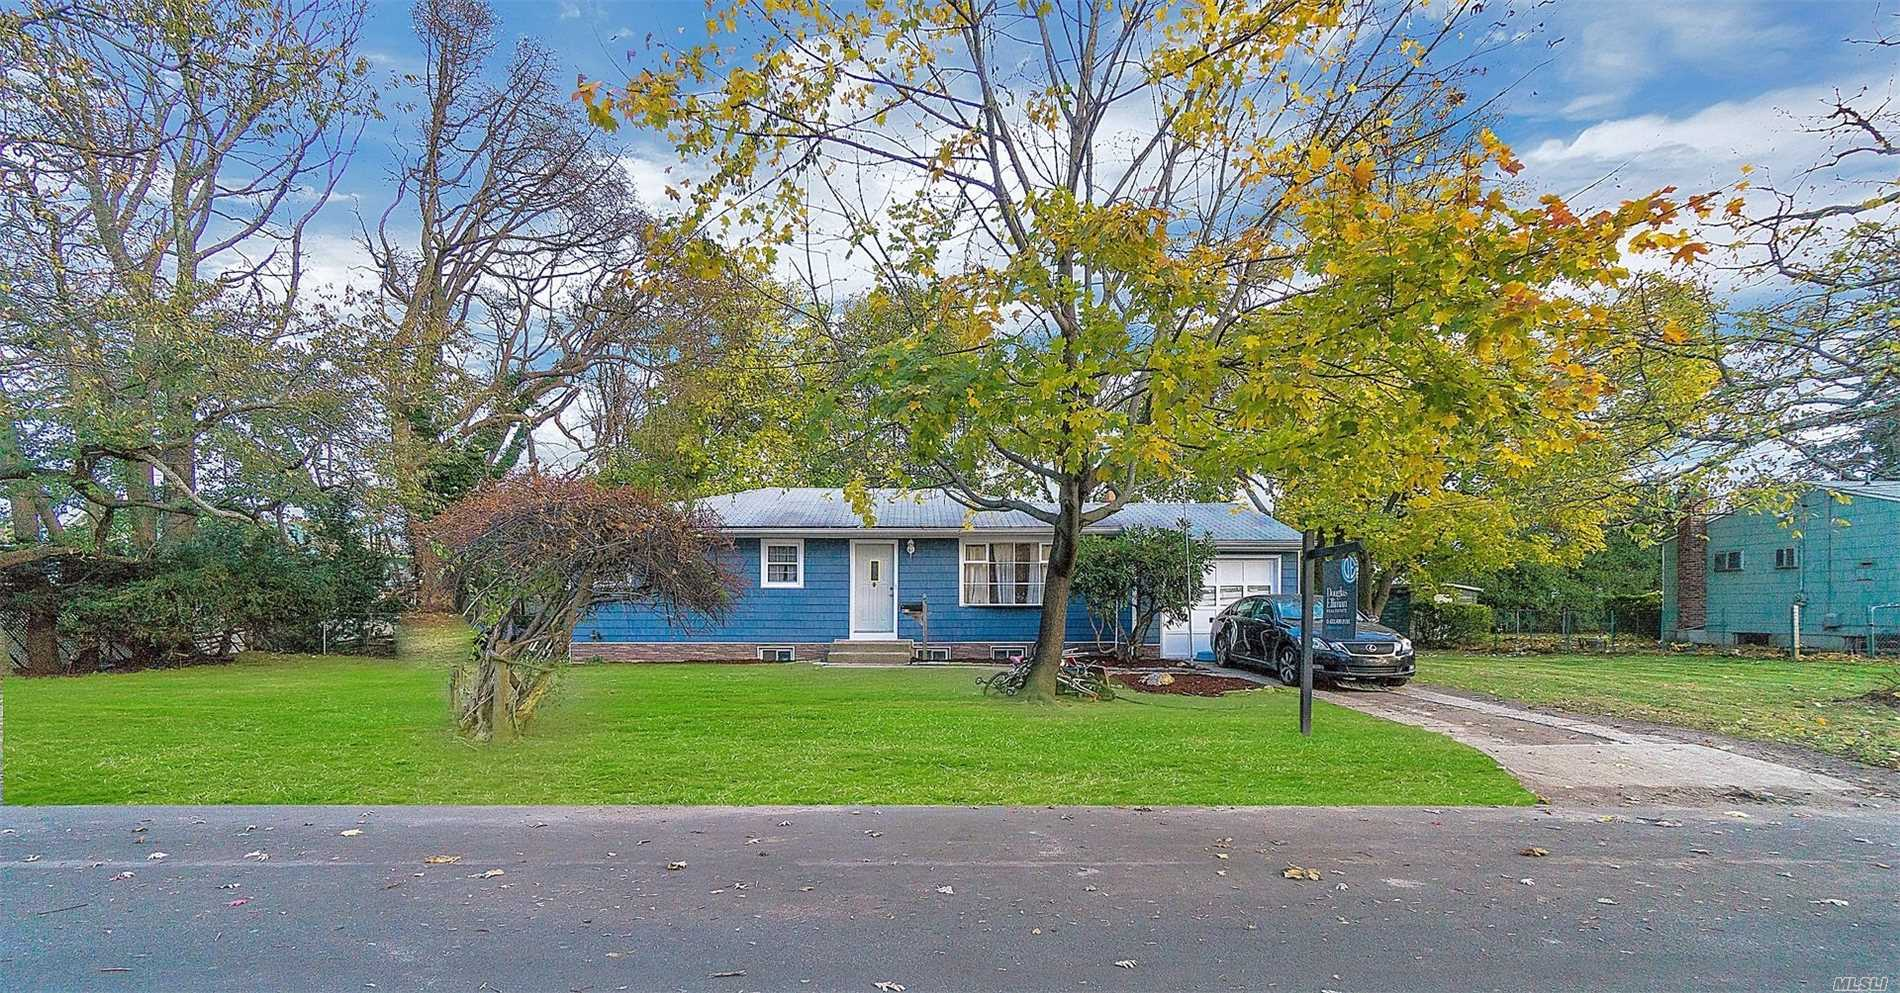 Photo of home for sale at 63 Franklin Ave, Deer Park NY